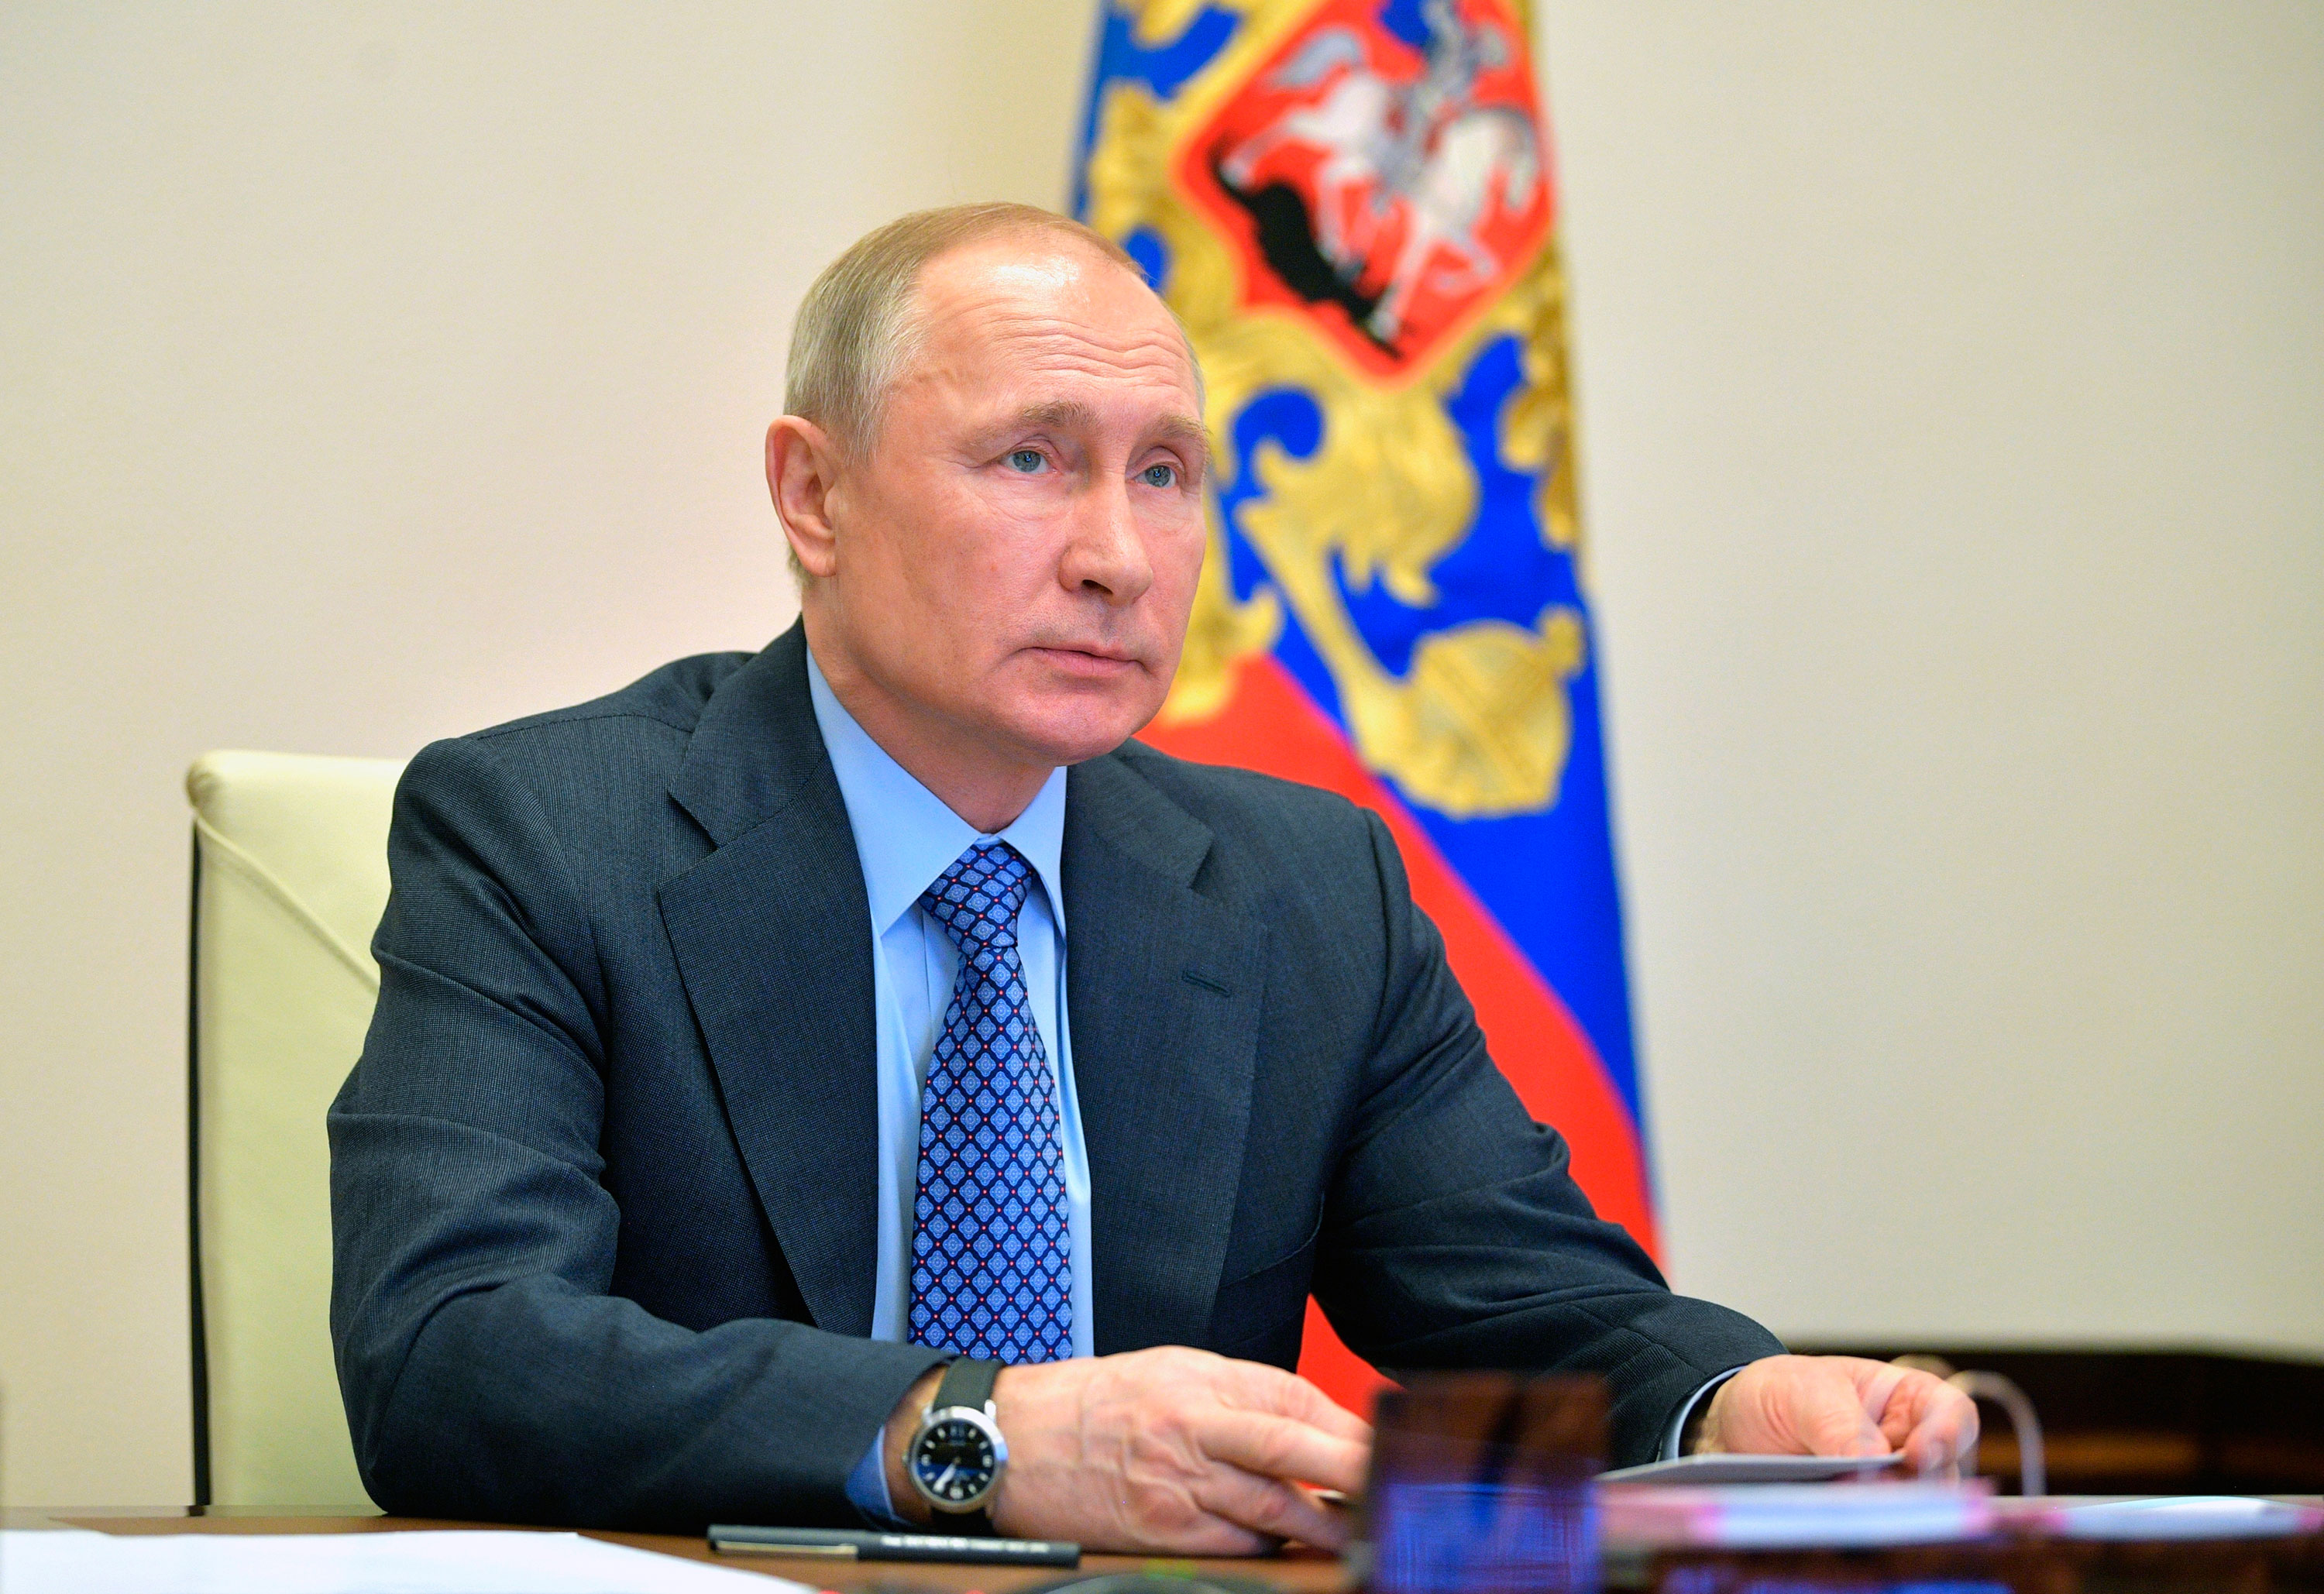 Russian President Vladimir Putin attends a video conference at the Novo-Ogaryovo residence outside Moscow, Russia, on April 14.